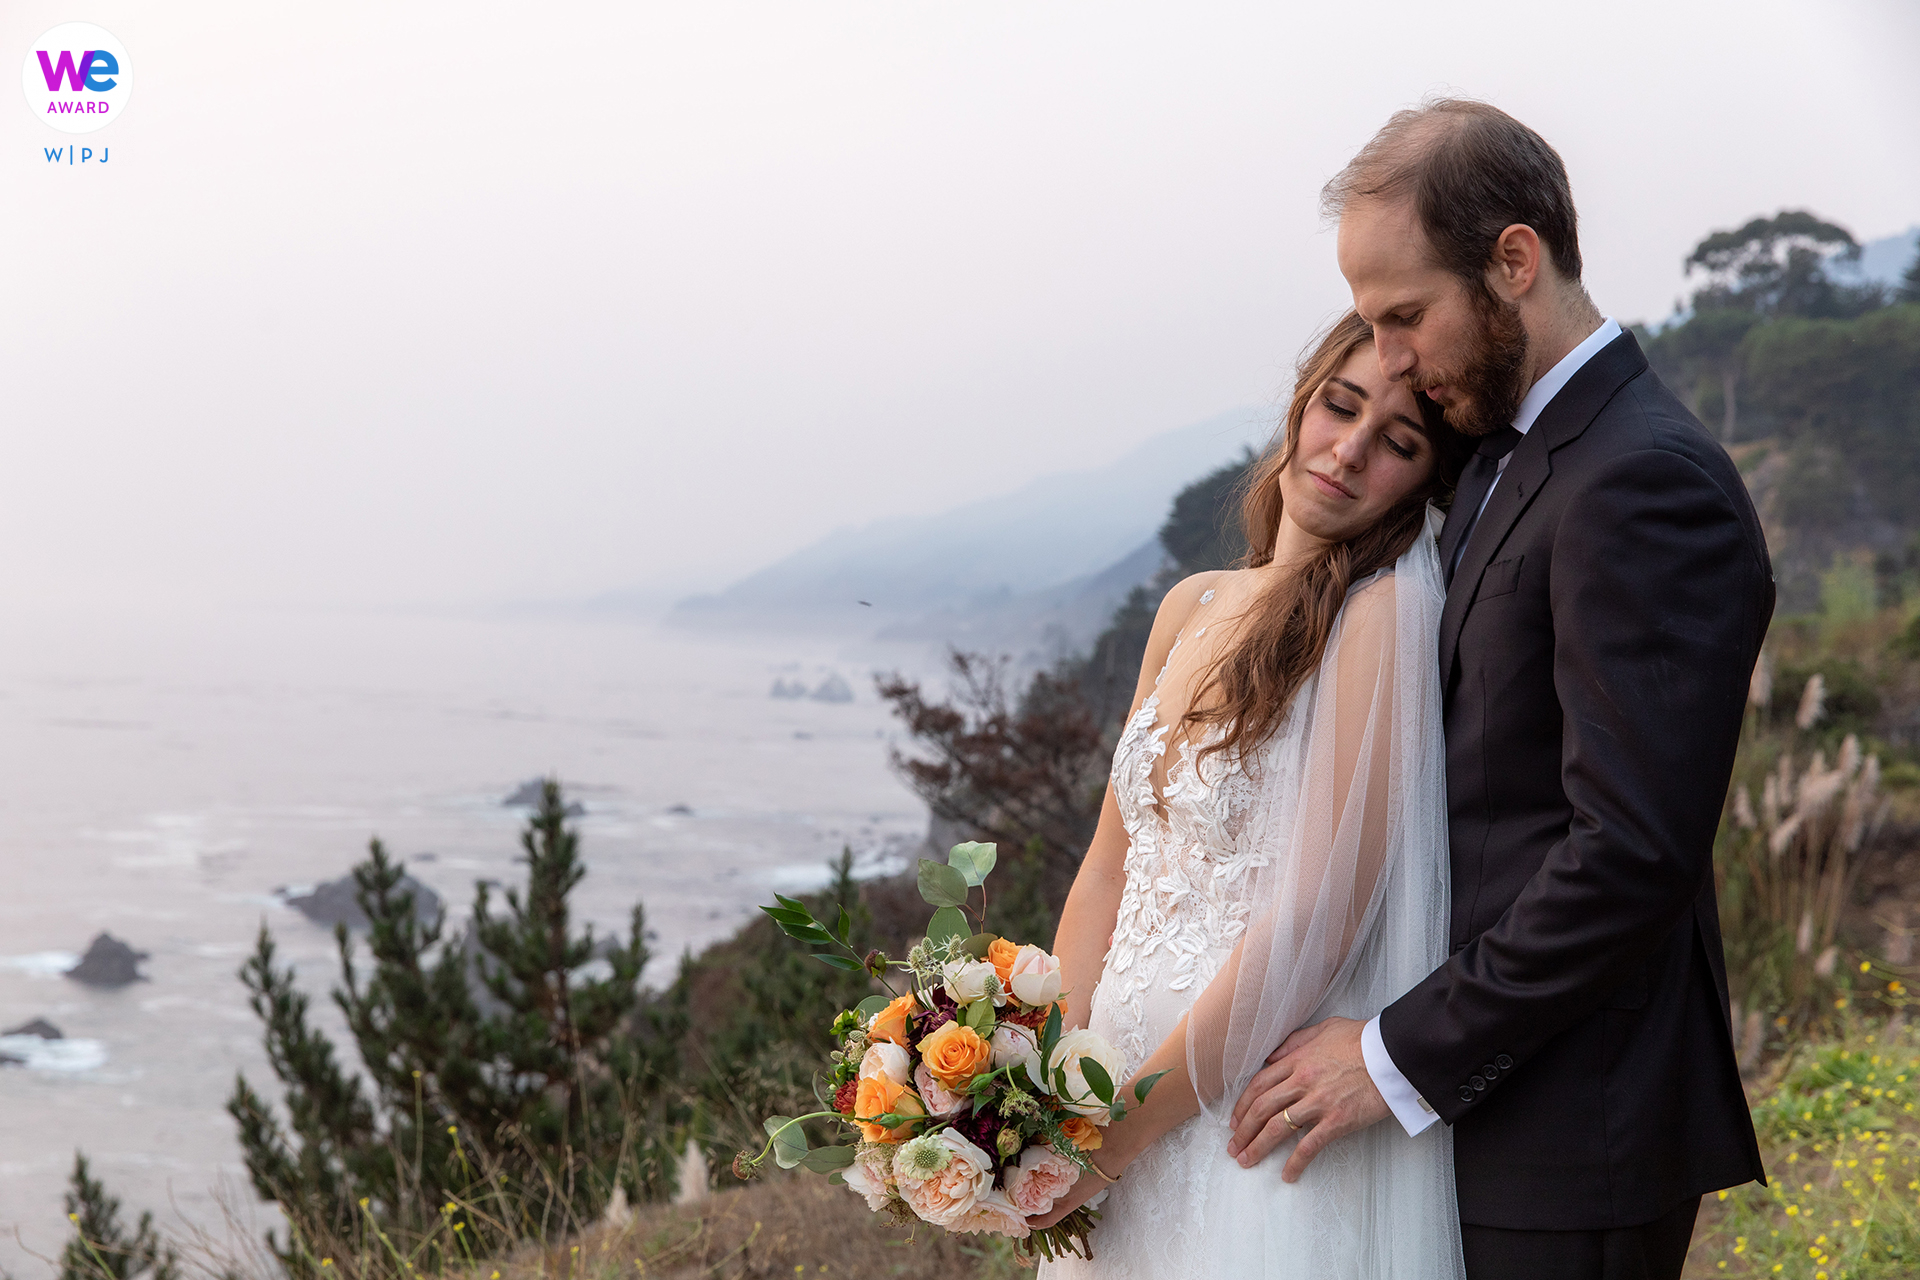 Wind and Sea Big Sur Wedding Photographer, CA | The bride and groom pose for a powerful, emotion-filled portrait